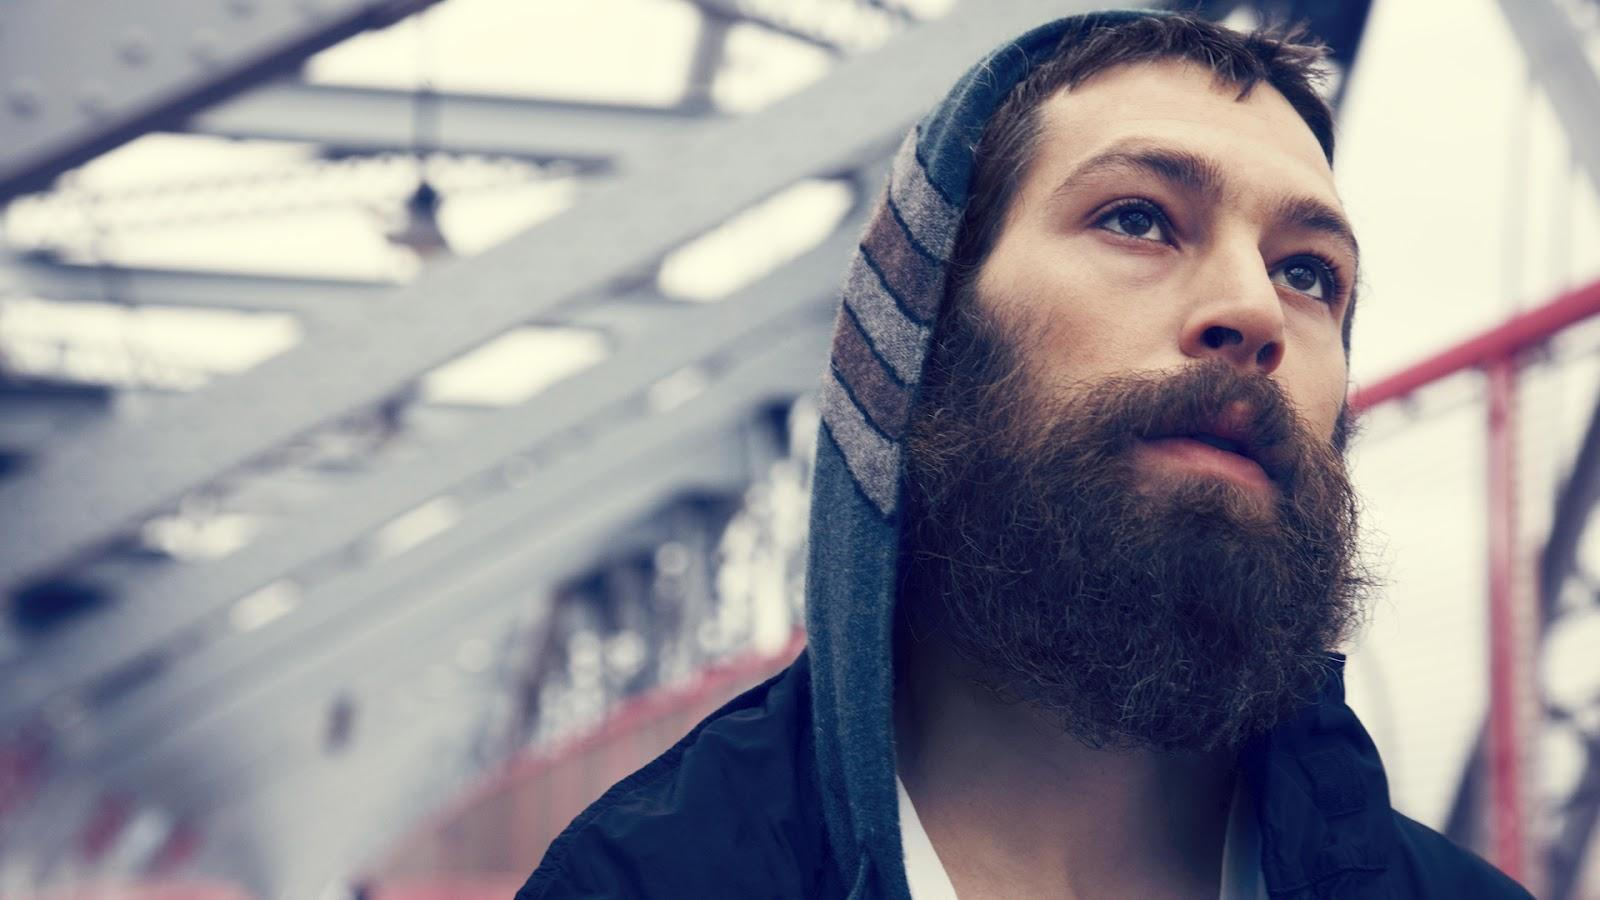 Matisyahu - One Day (YouTube Version)